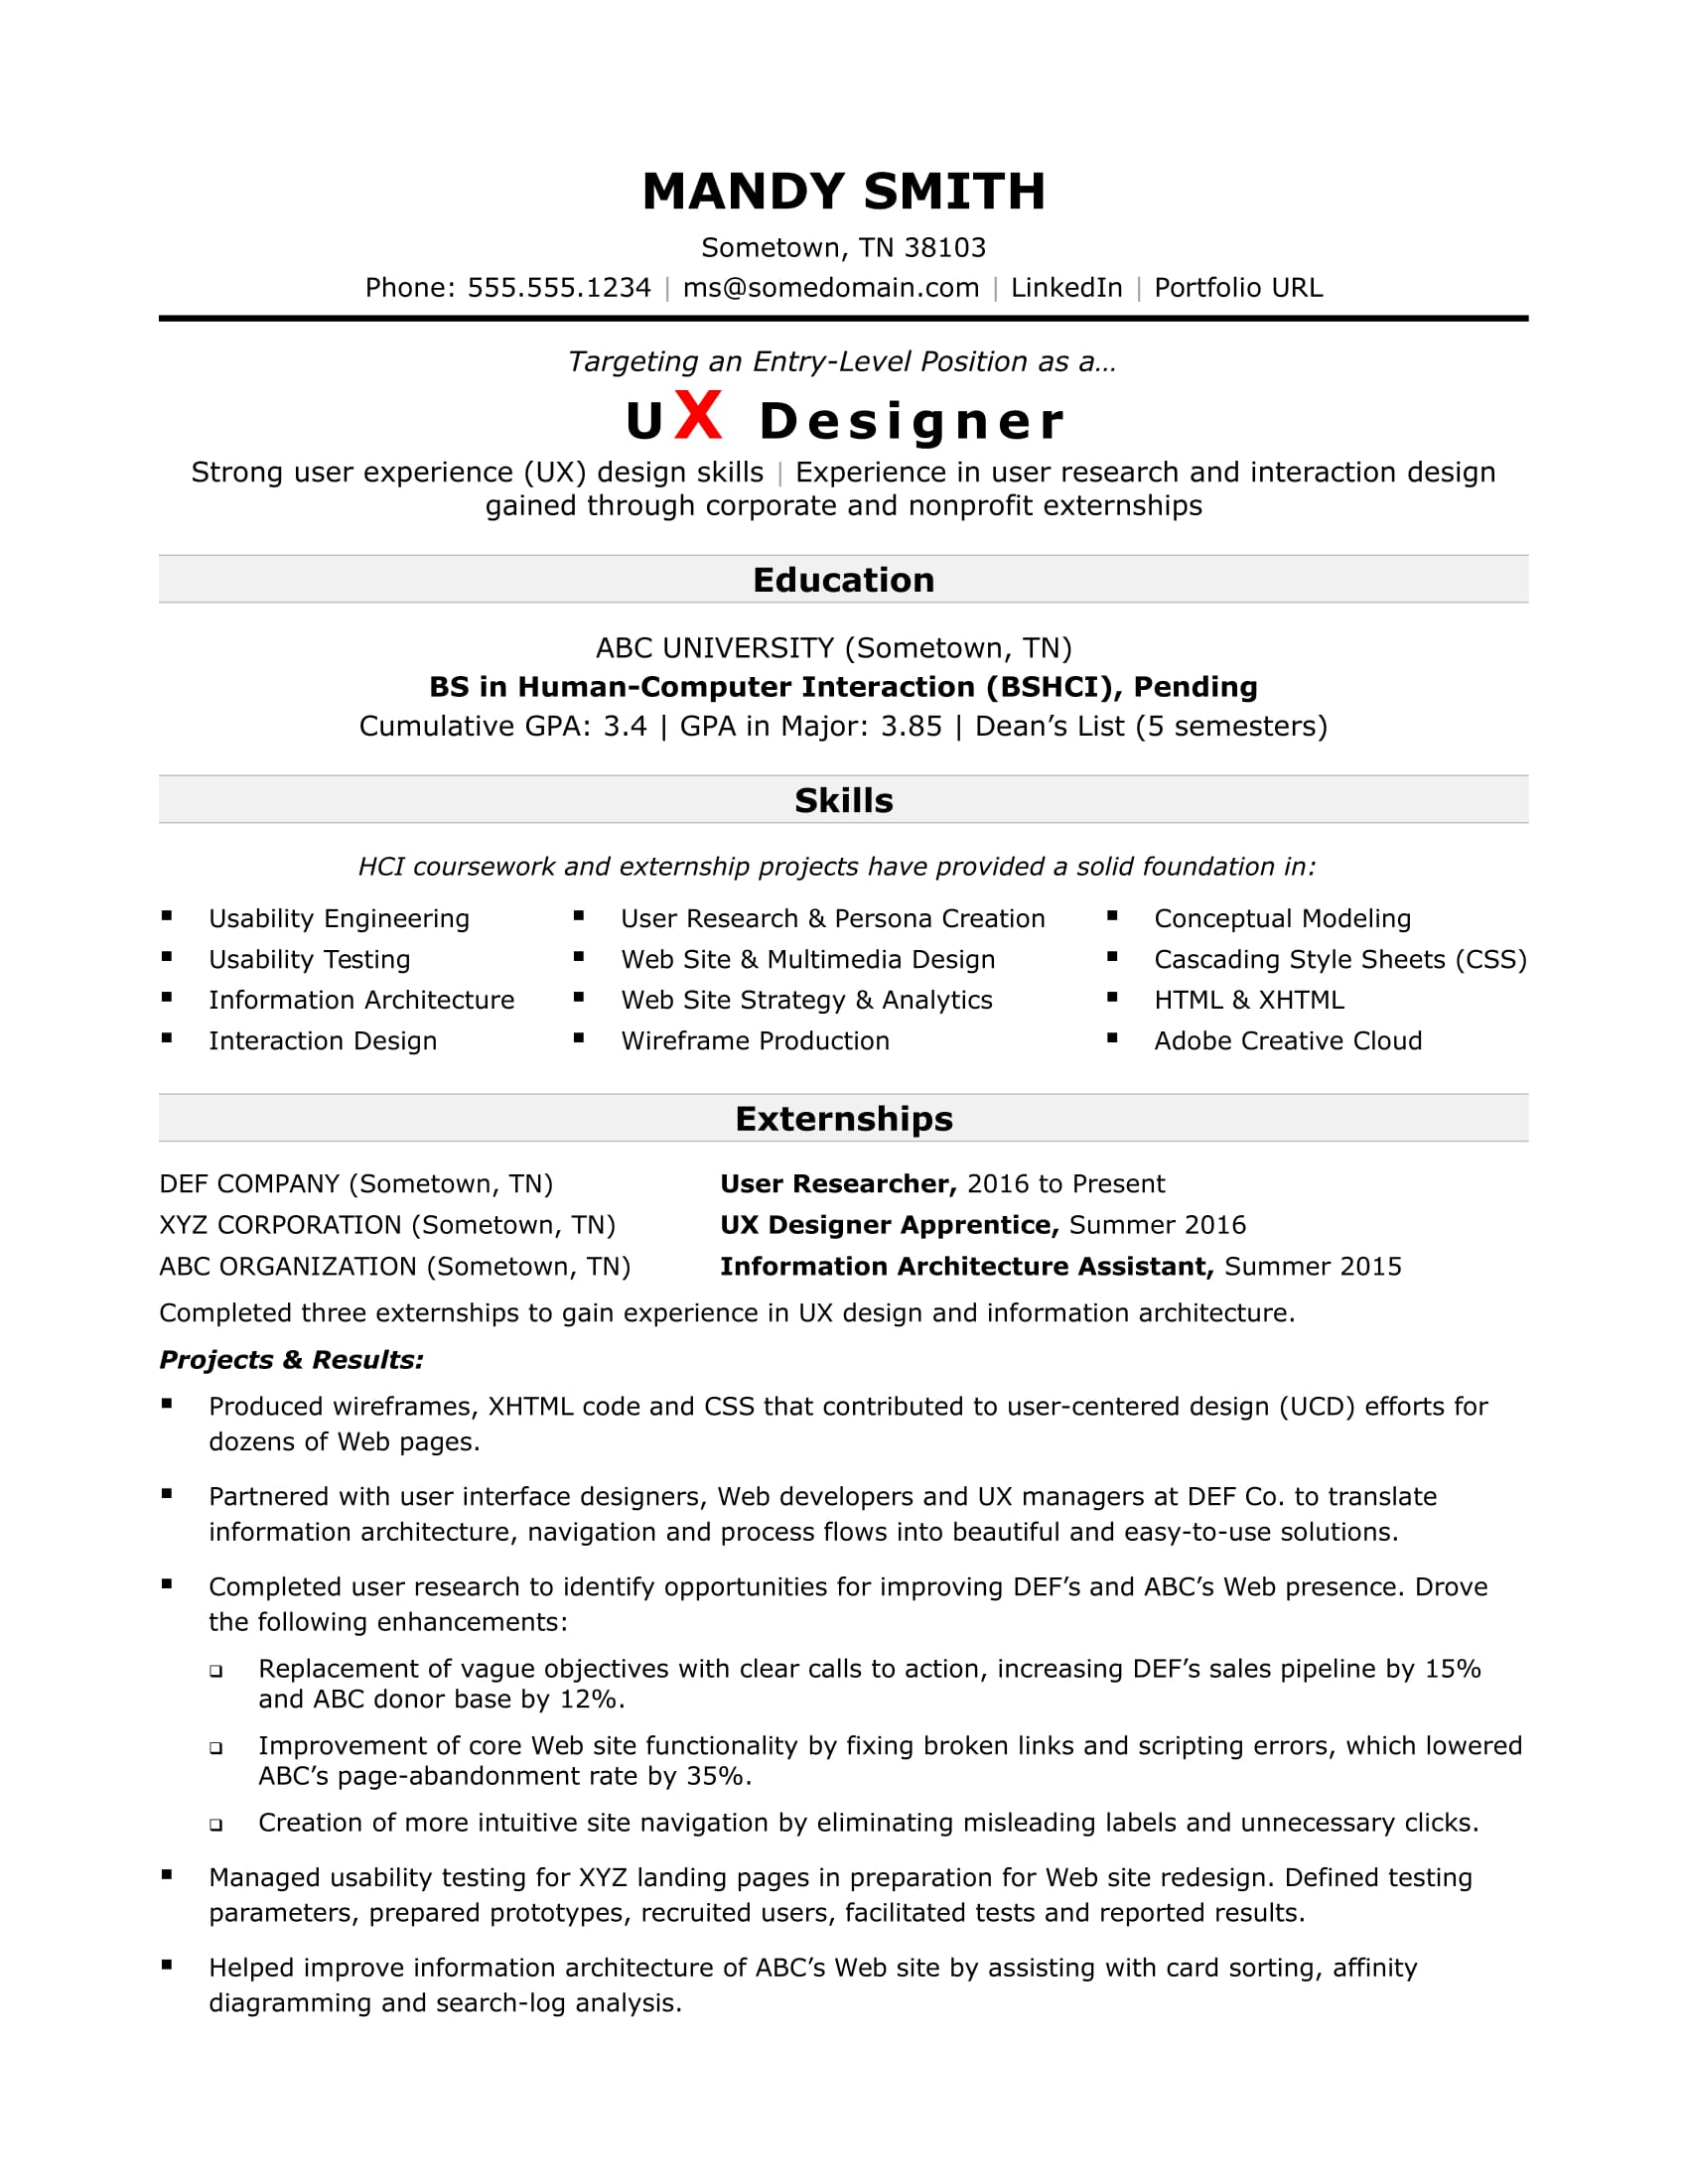 sample resume for an entry level ux designer